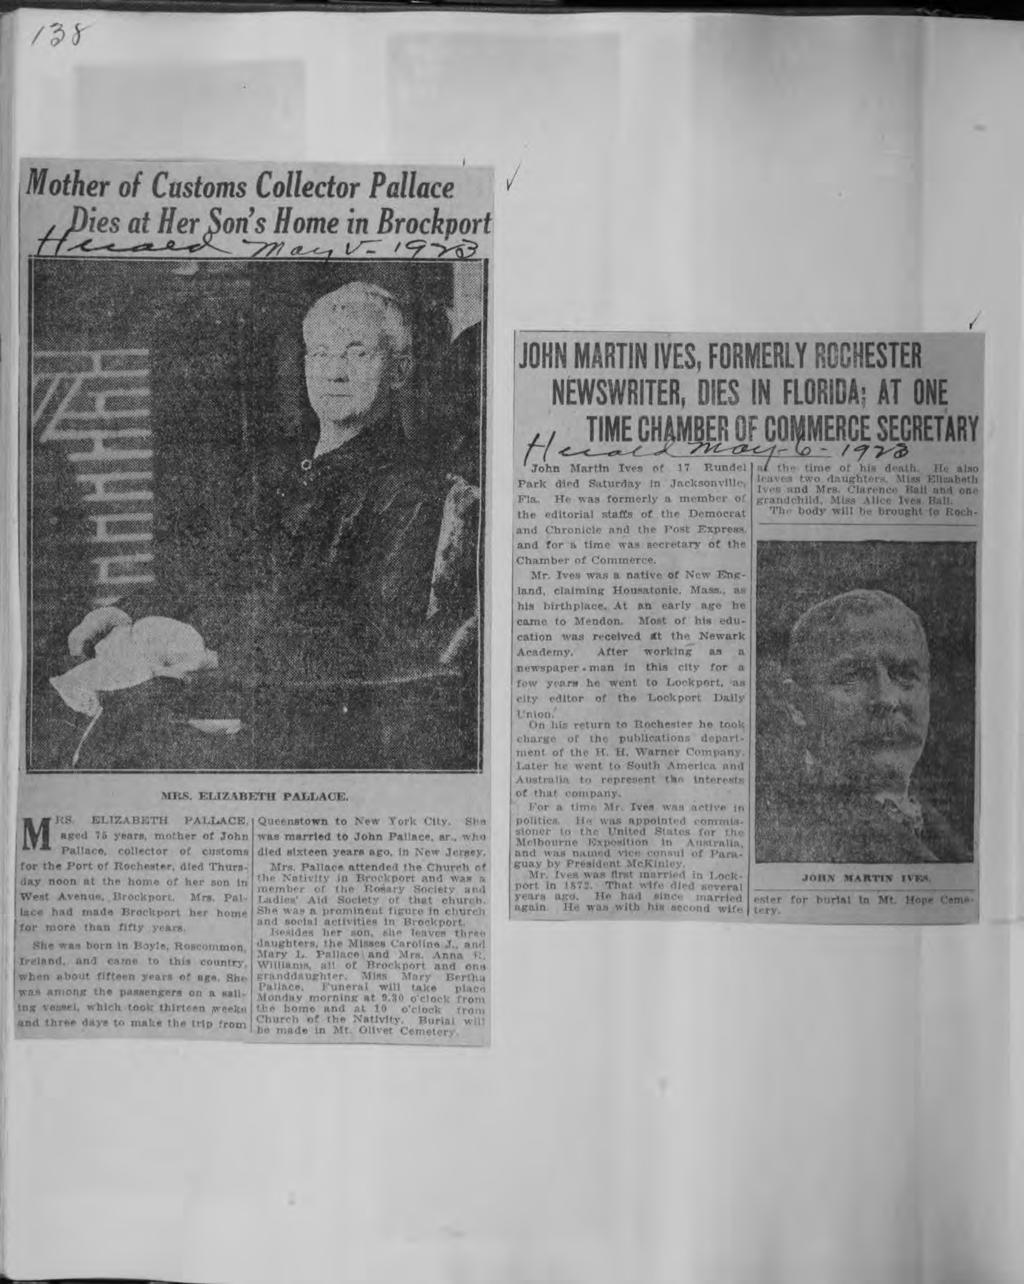 /2<J- Central Lbrary of Rochester and Monroe County Hstorc Scrapbooks Collecton Mother of Customs Collector Pallace & es at Her Sons Home n Brockport JOHN MARTN VES, FORMERLY ROCHESTER NEWSWRTER, DES